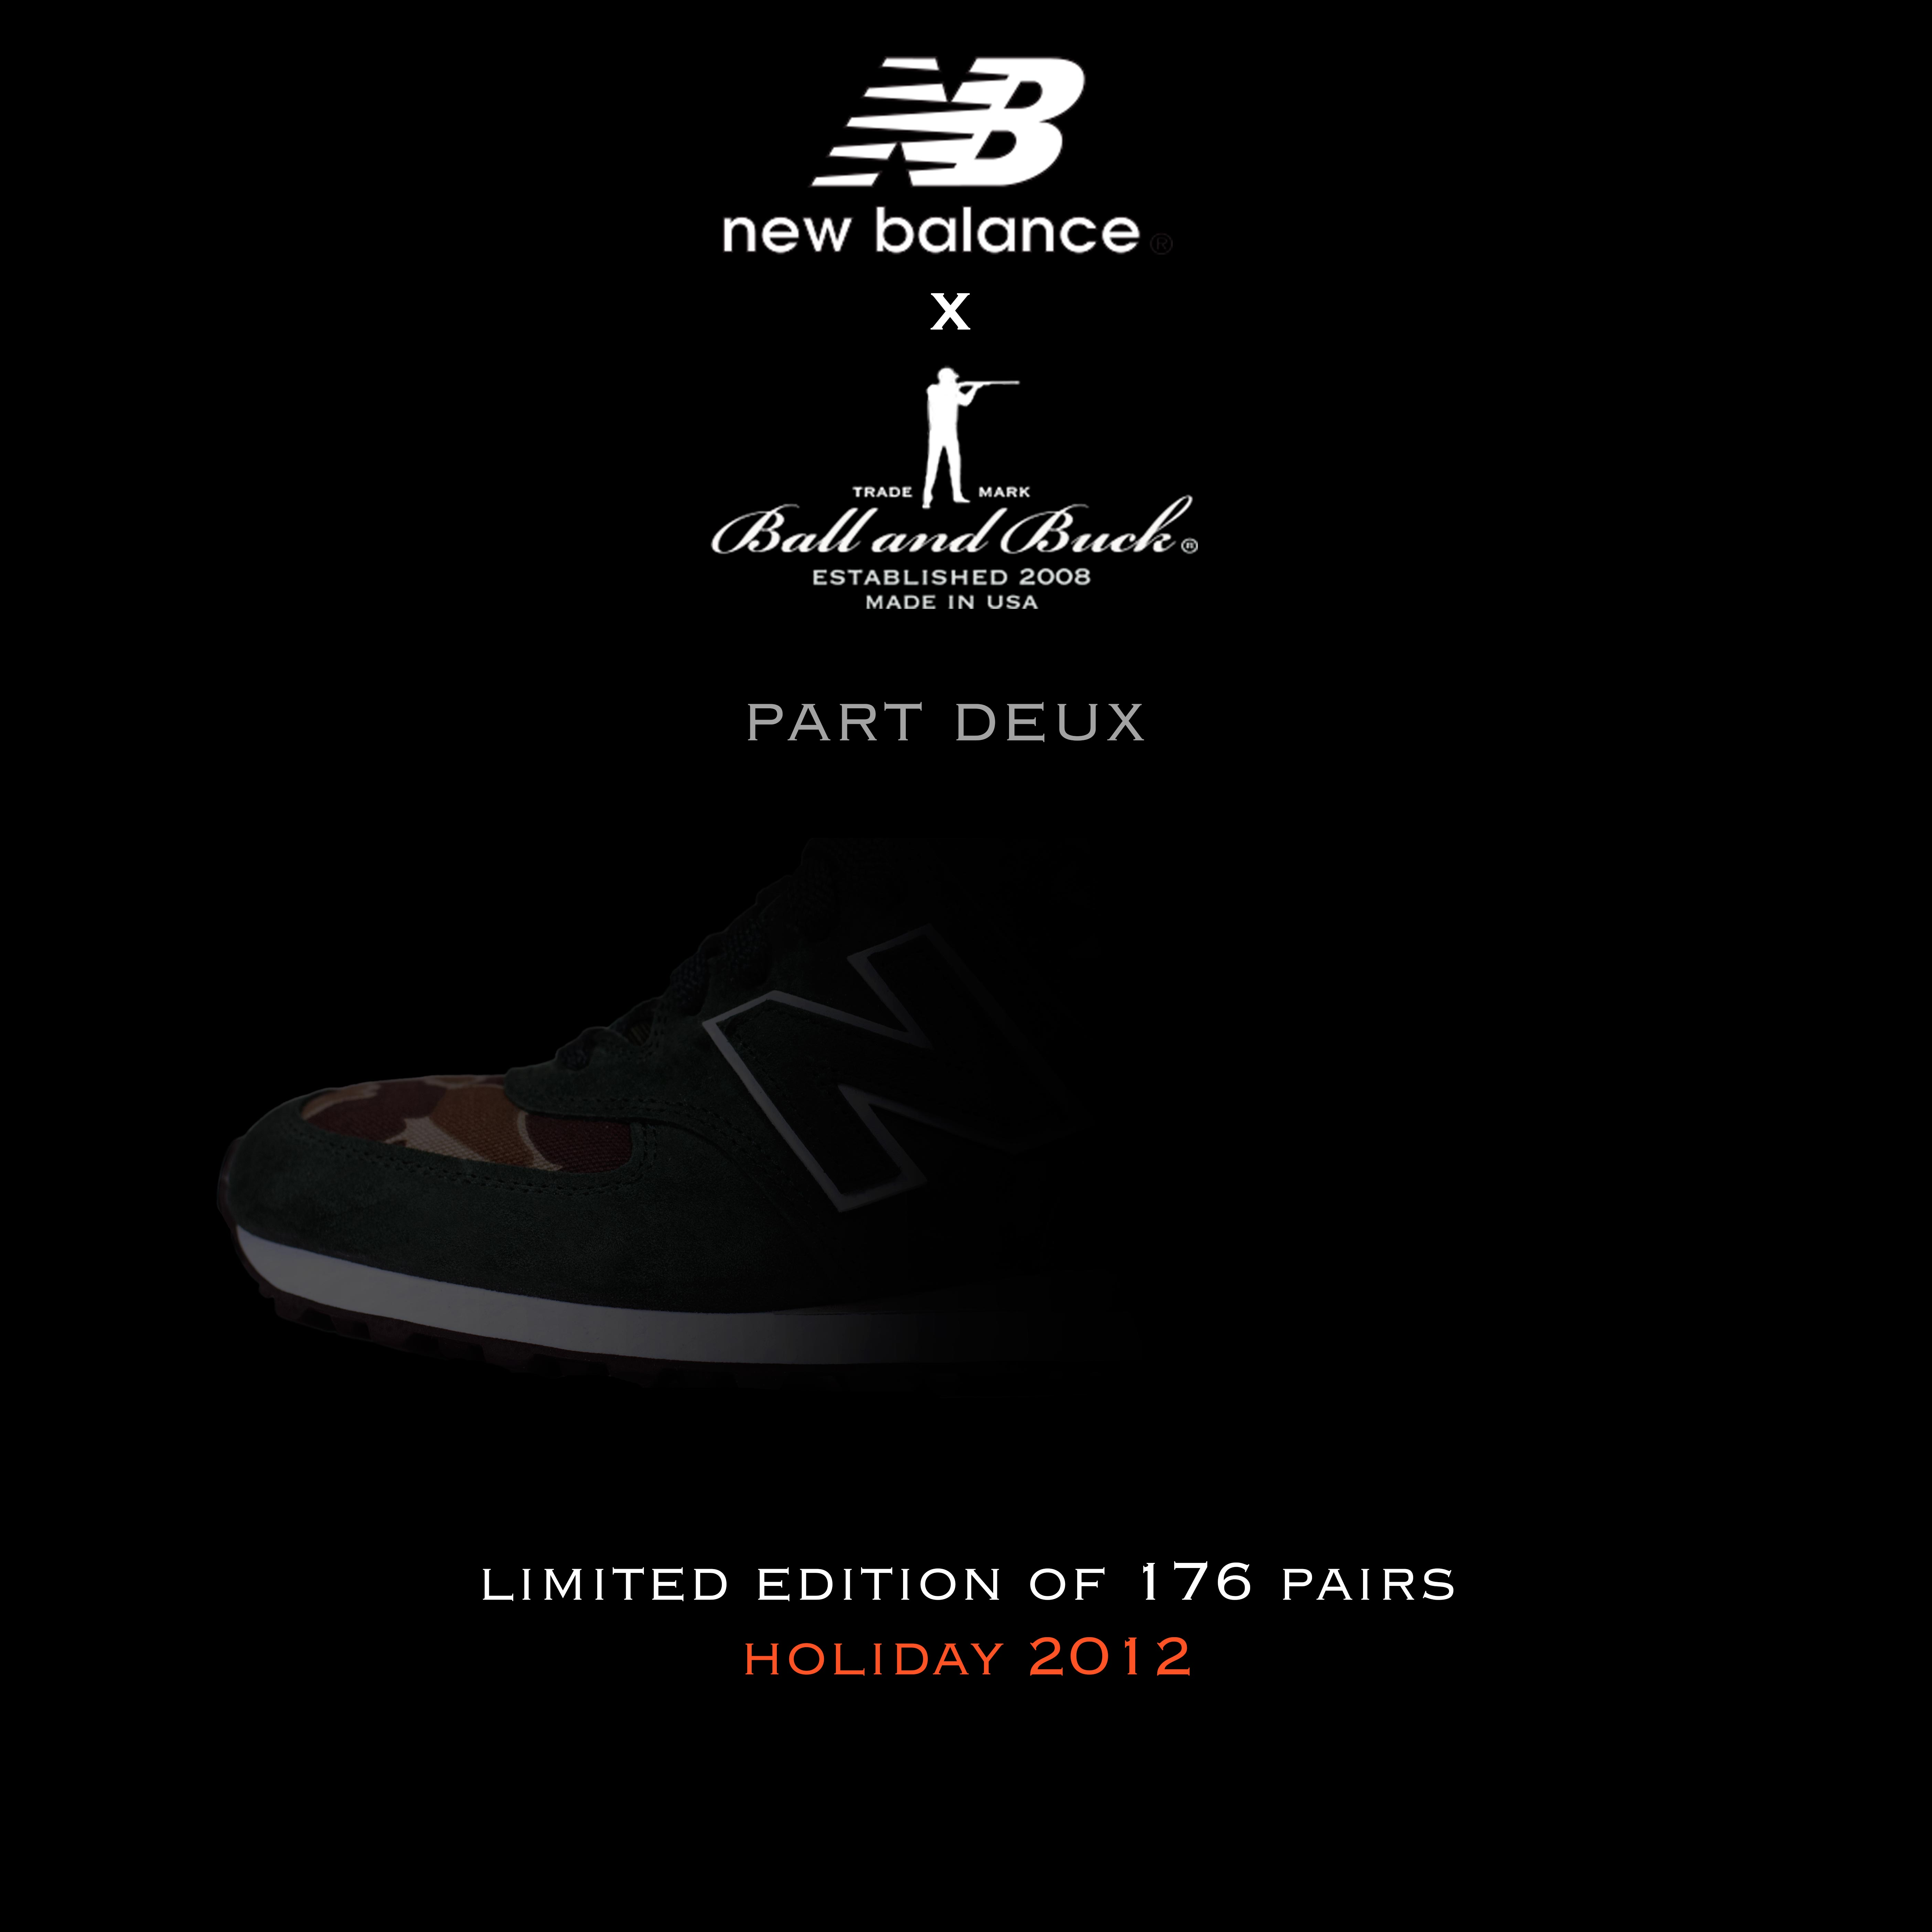 Ball and Buck x New Balance Teaser